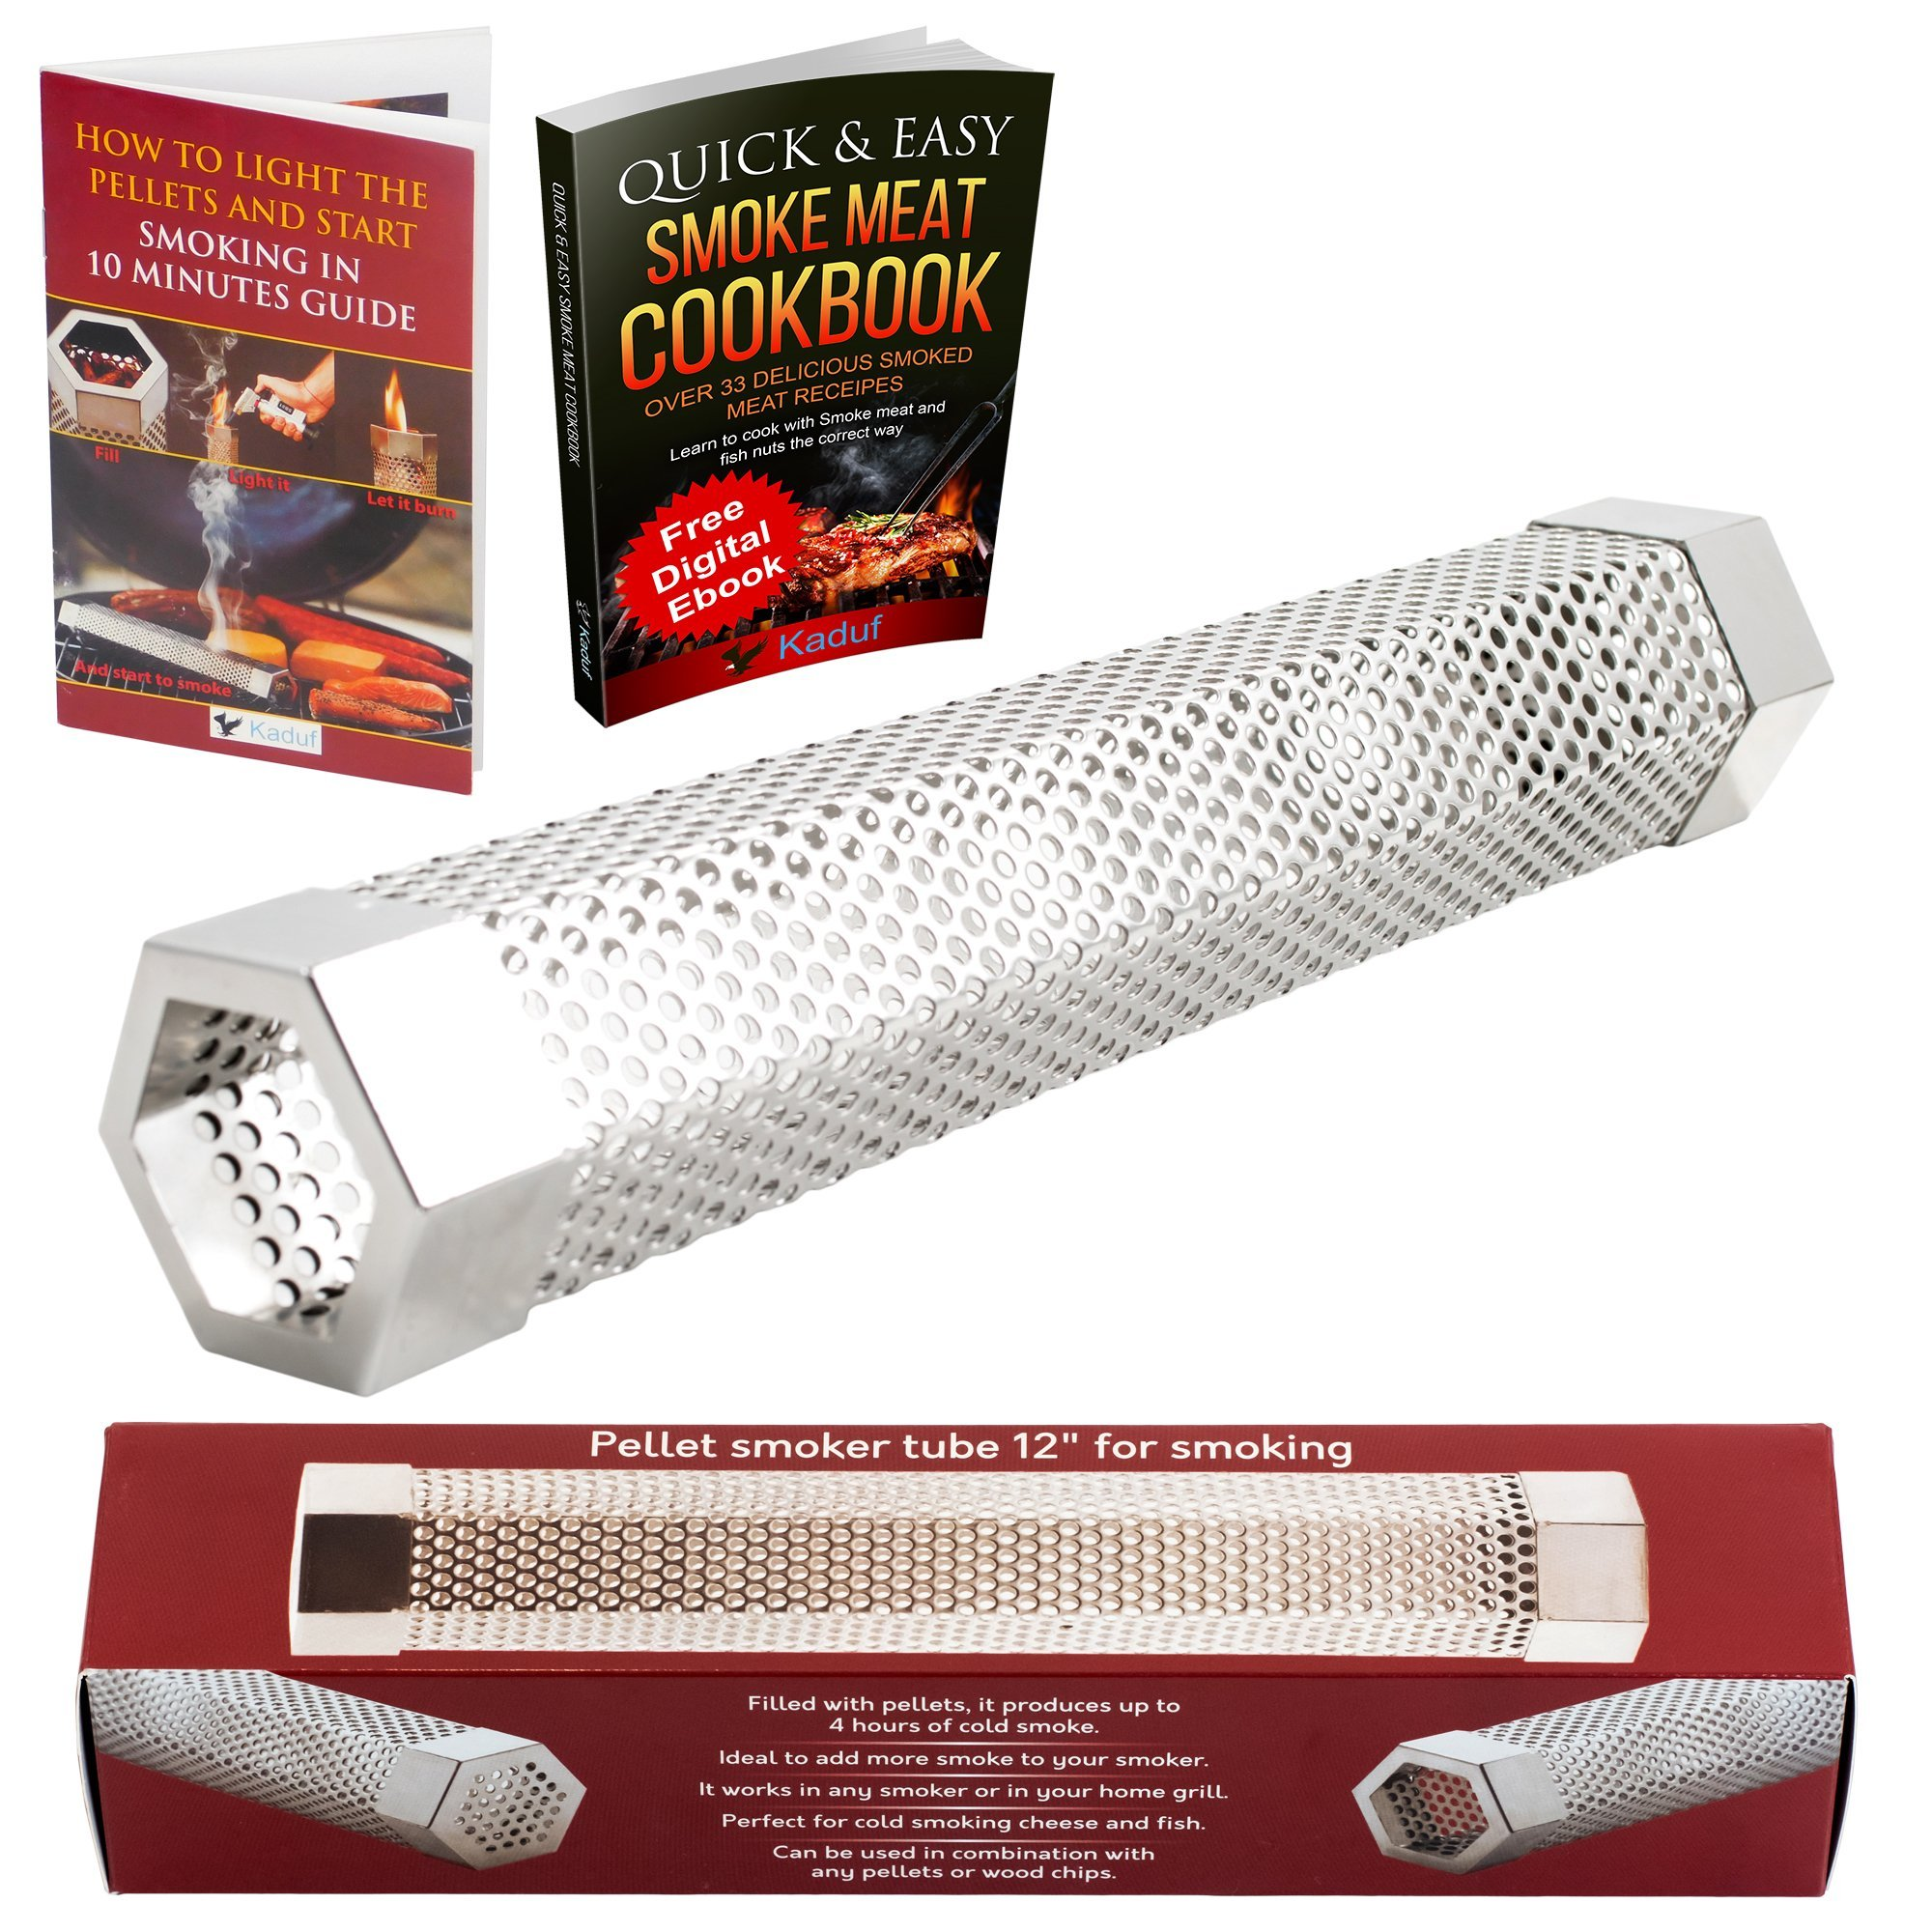 "Kaduf Pellet Smoker Tube 12"" - Up to 5 Hours Smoking - Add to Your Grill or Smoker For Extra Smoke Flavor - Cold & Hot Smoking - Works With Pellets and Wood Chips - Hexagonal"